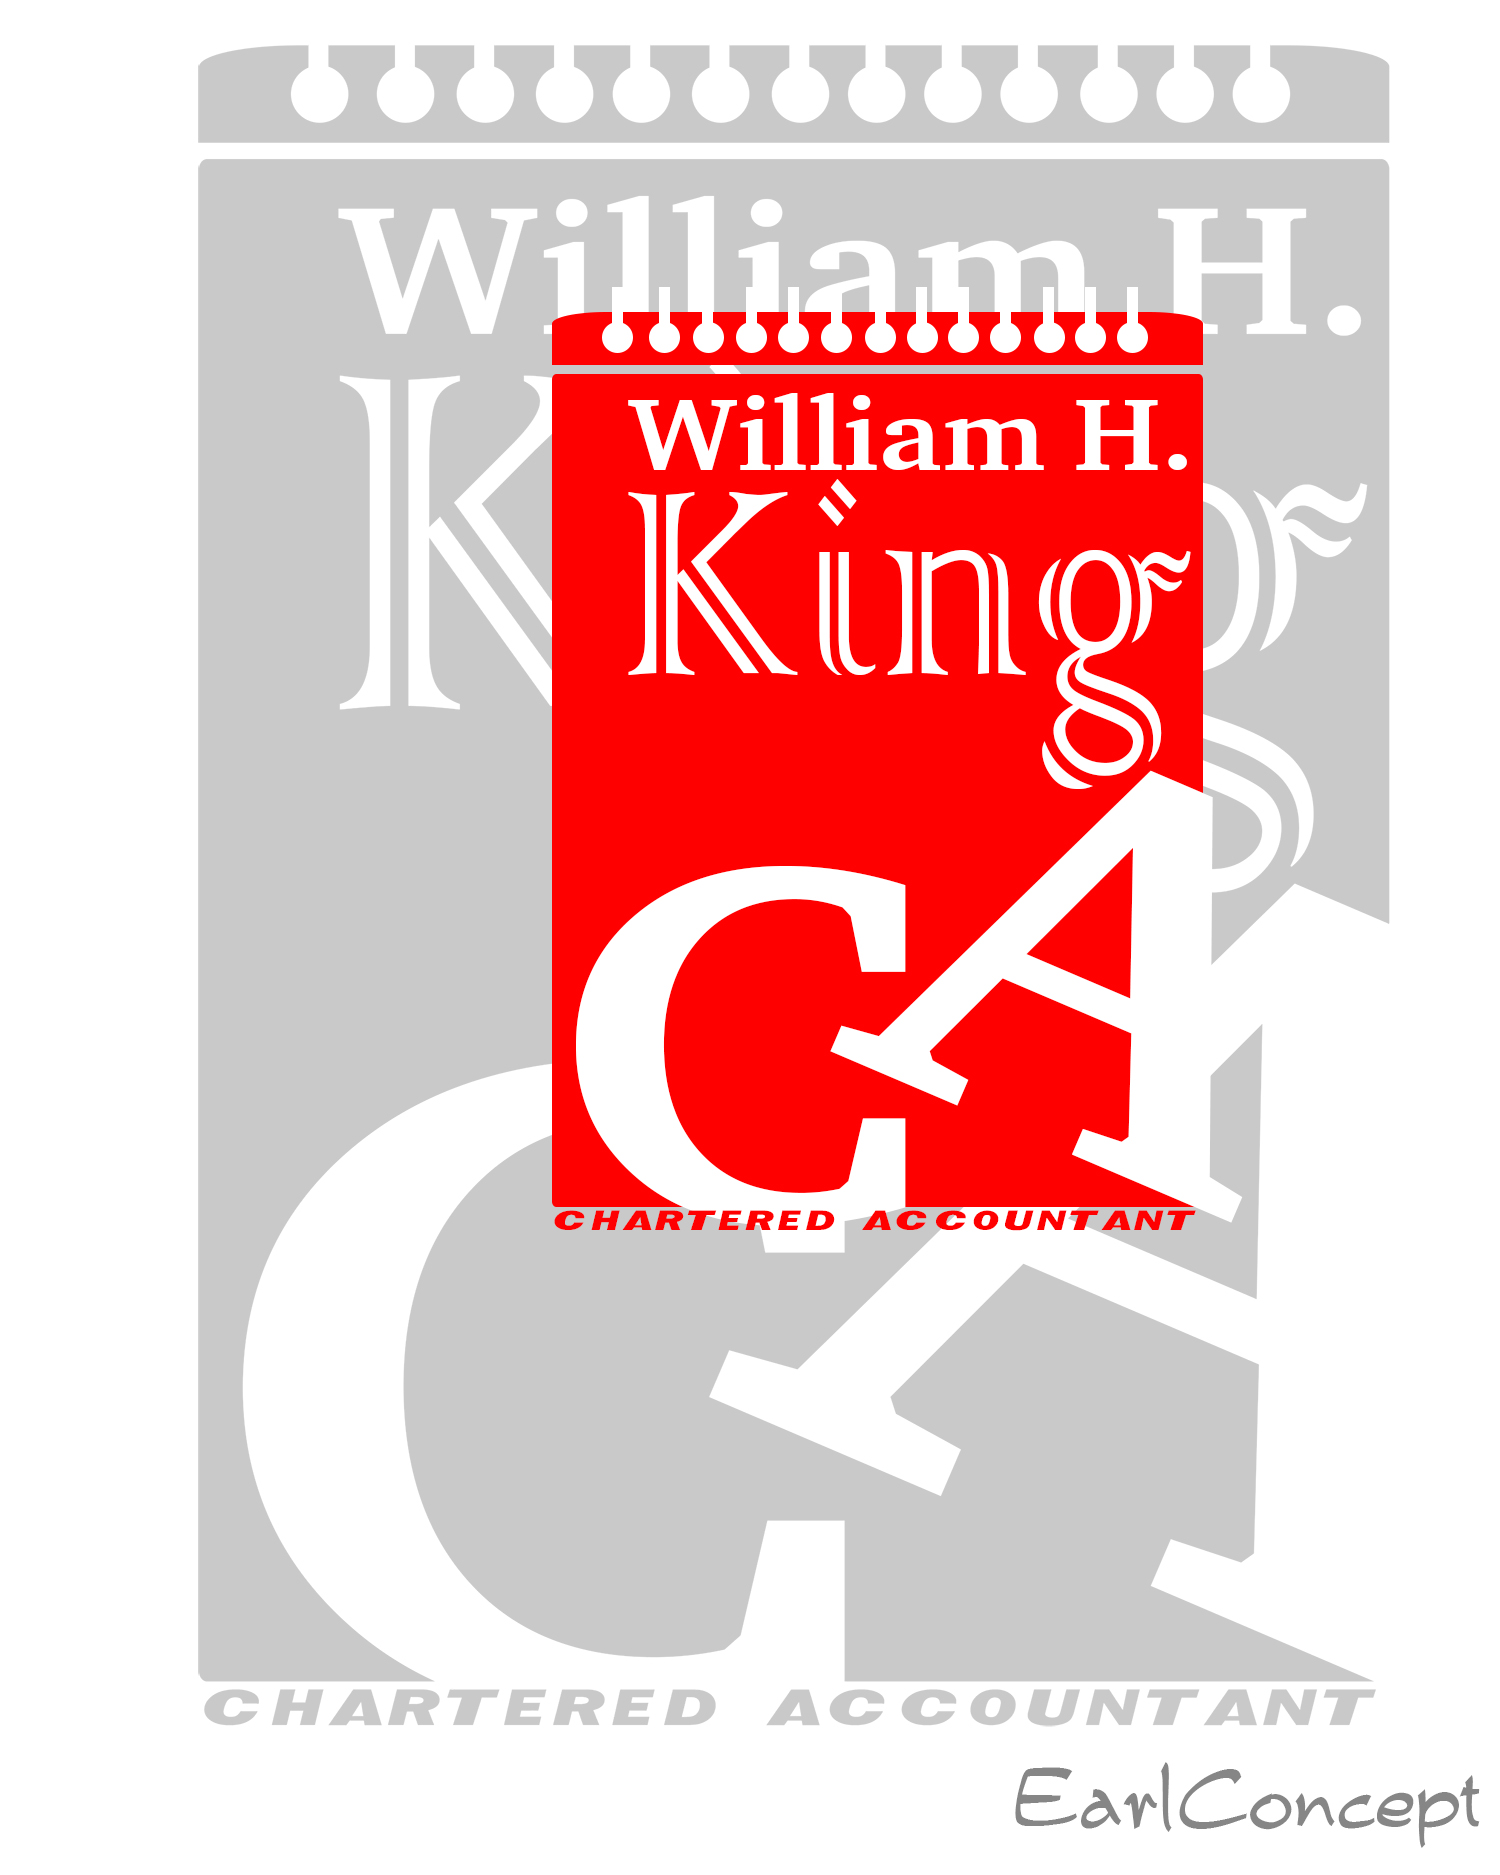 Logo Design by Earl Bangot - Entry No. 175 in the Logo Design Contest New Logo Design for William H. King, Chartered Accountant.